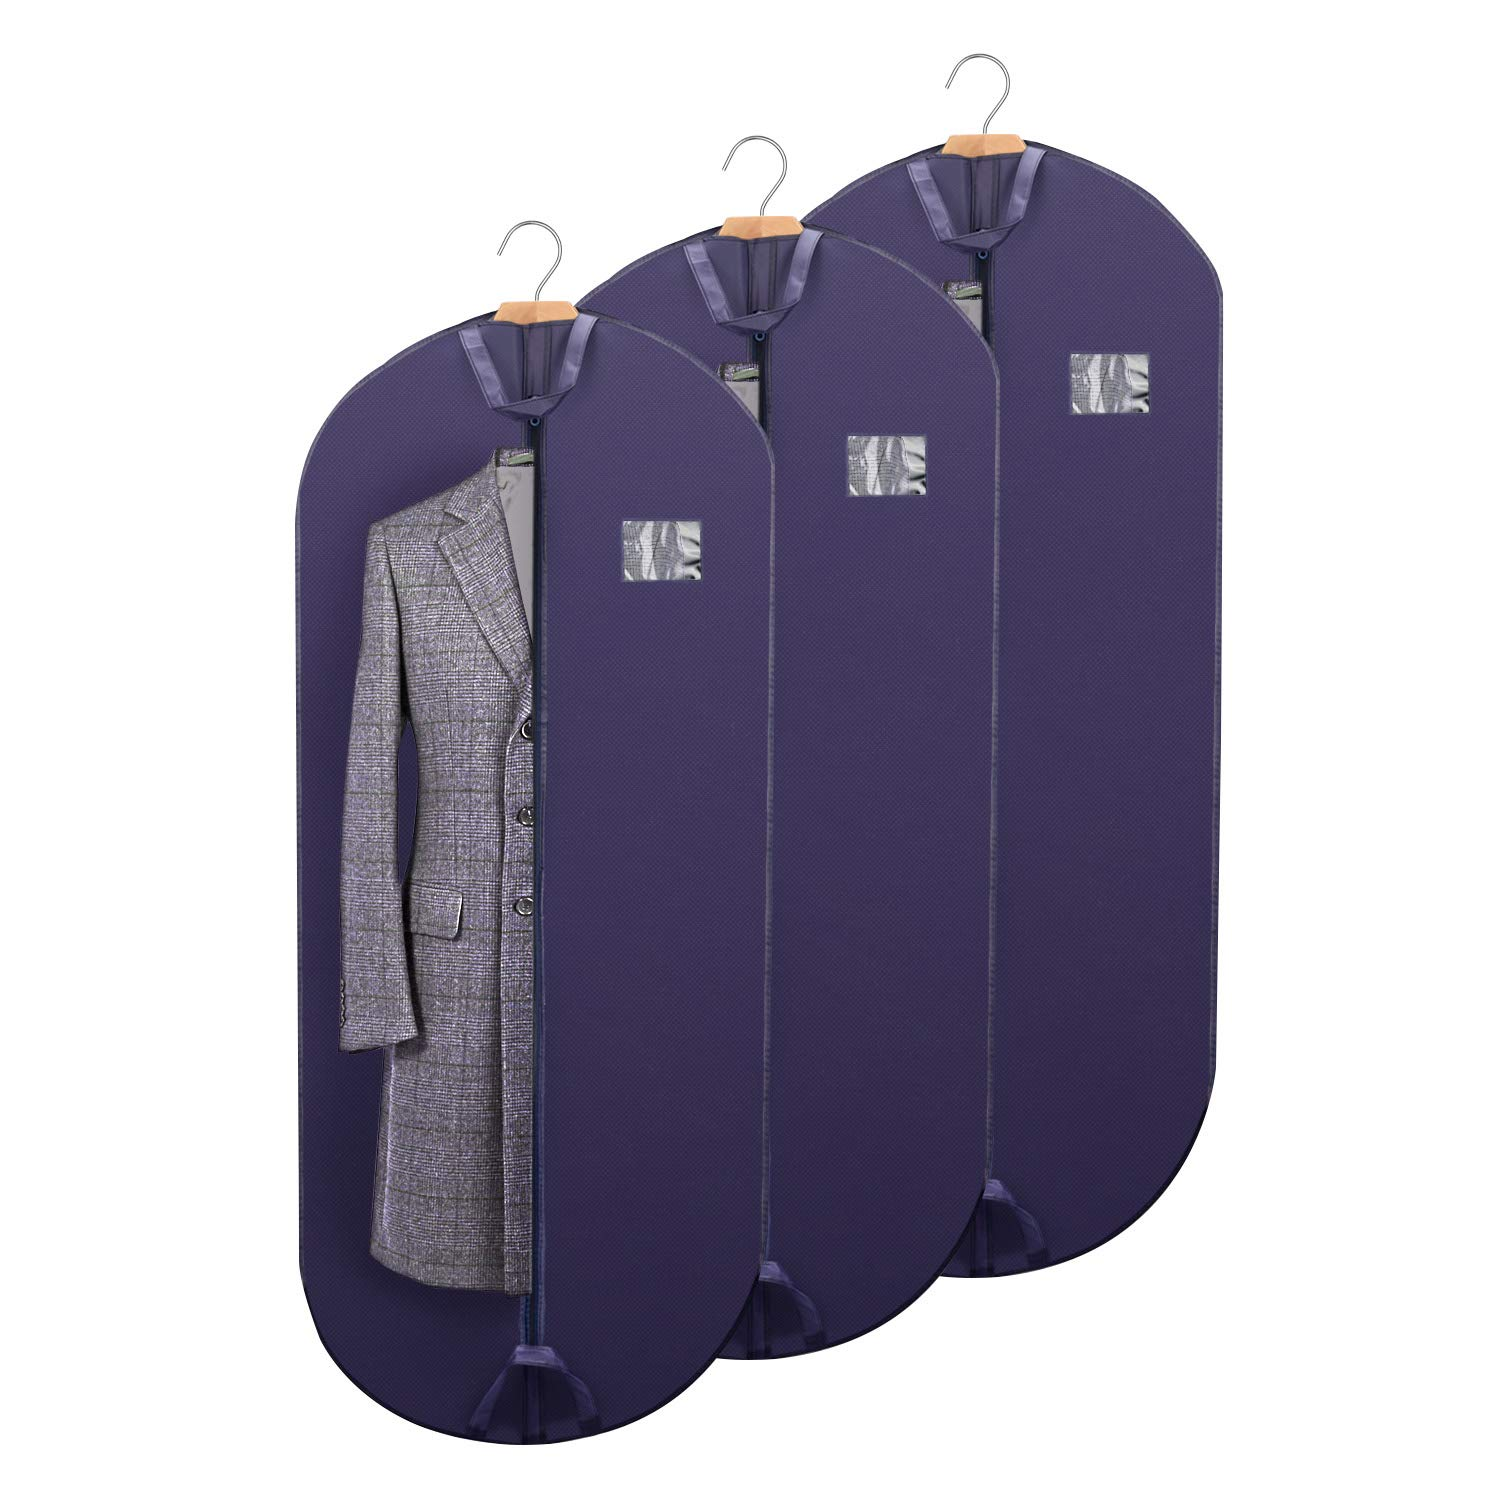 Titan Mall Garment Bag 42